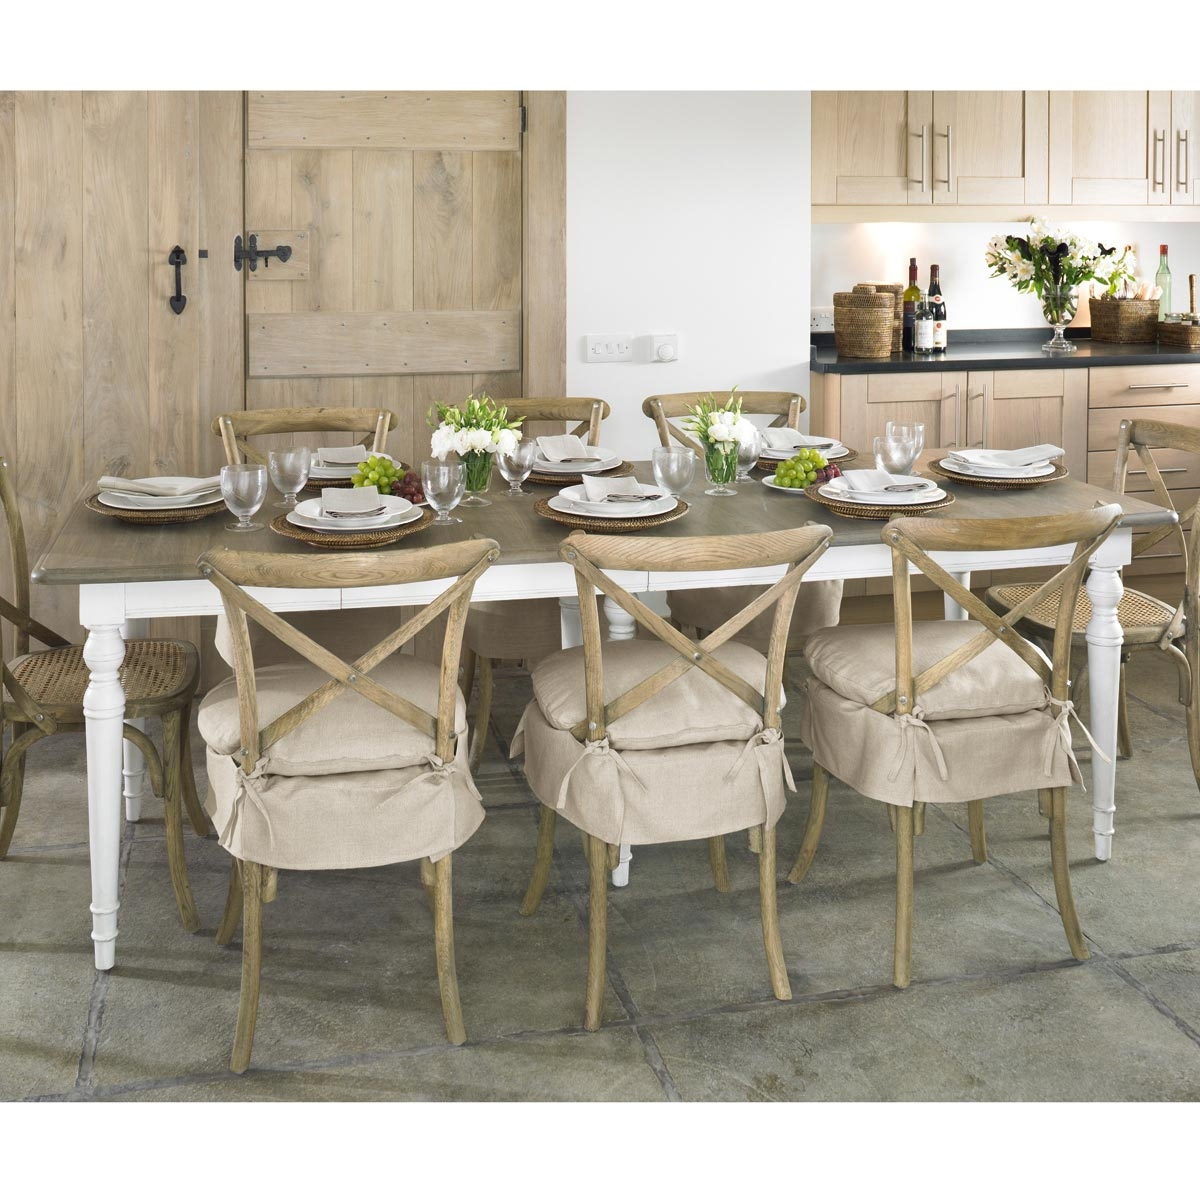 The Most Elegant Oka Dining Table For Home